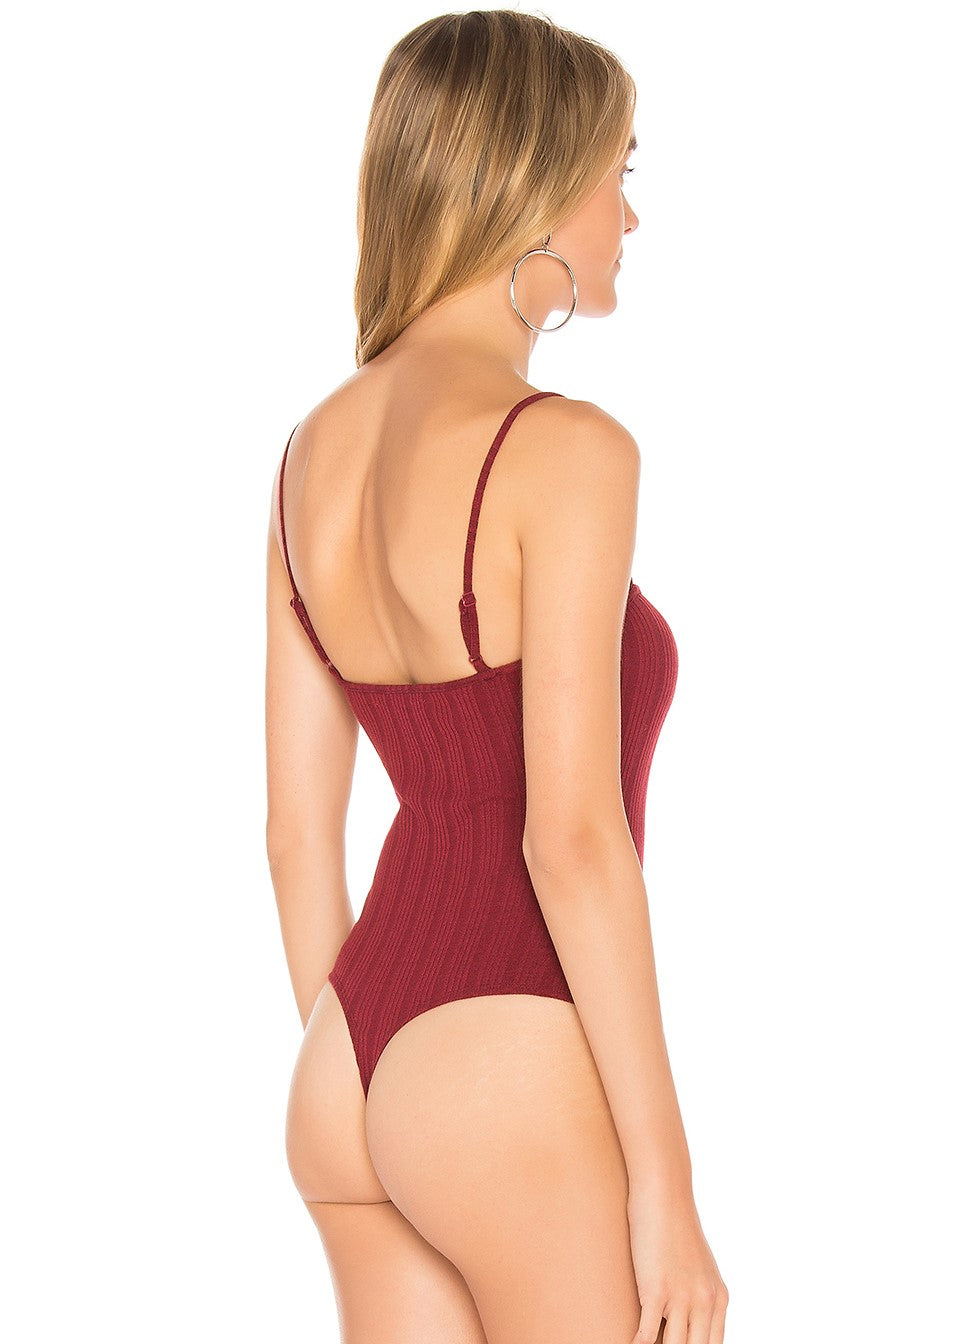 Privacy Please - Packston Bodysuit Burgundy - Button Front Thong Back